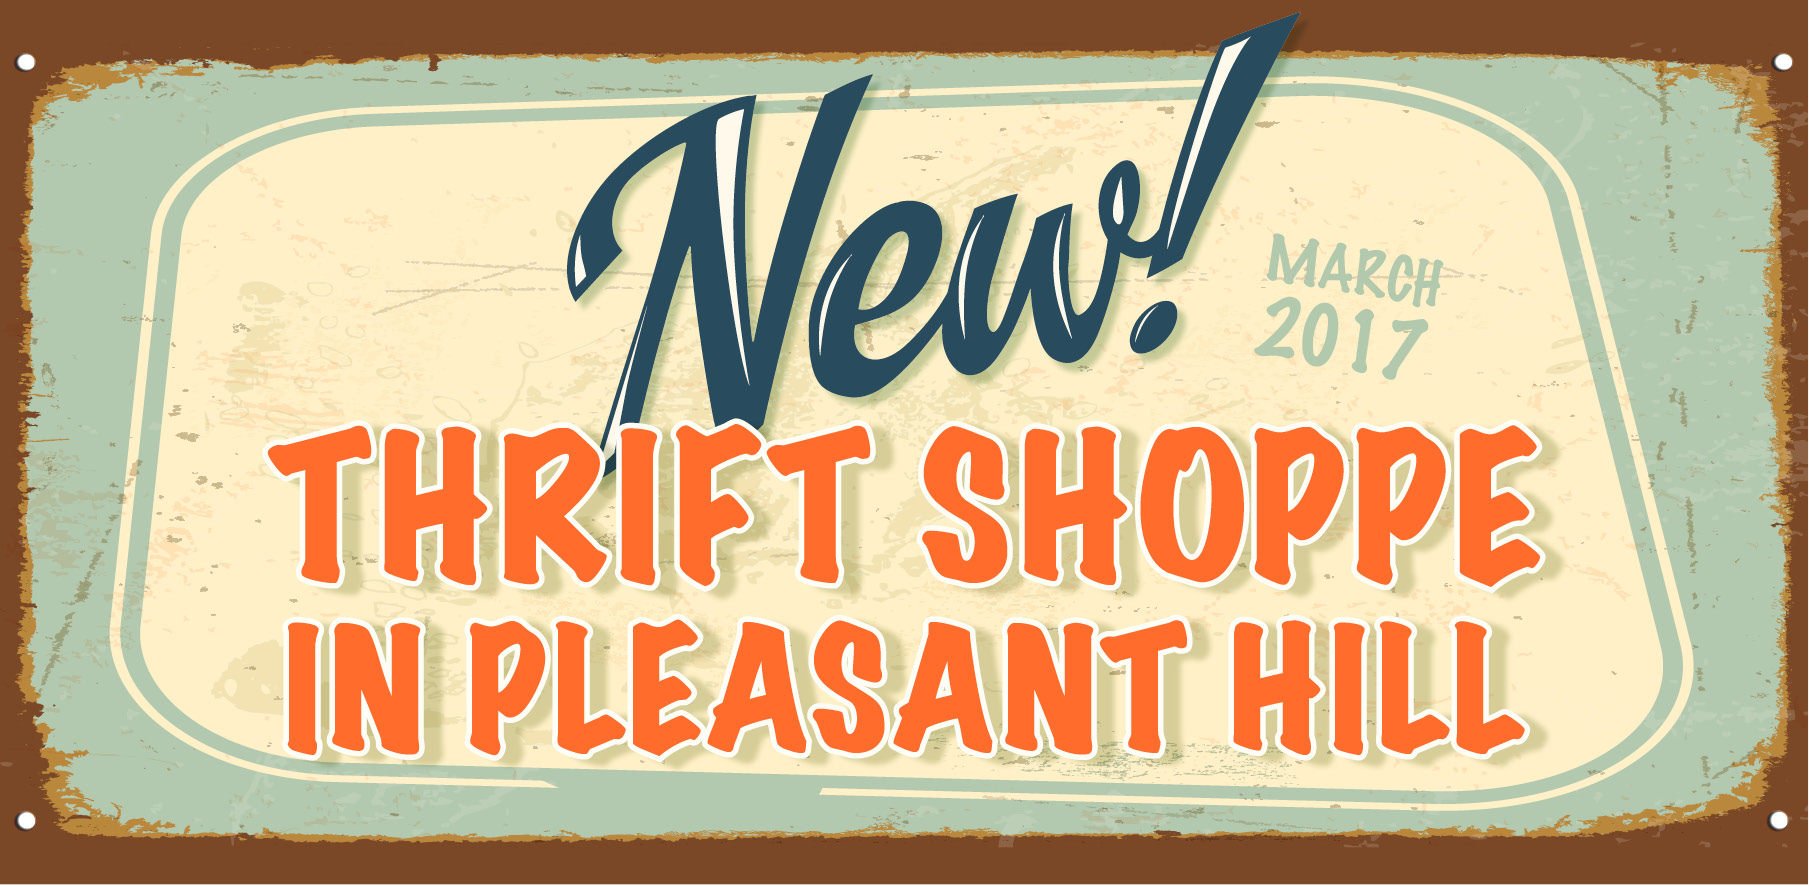 ue-new-thrift-shoppe-343